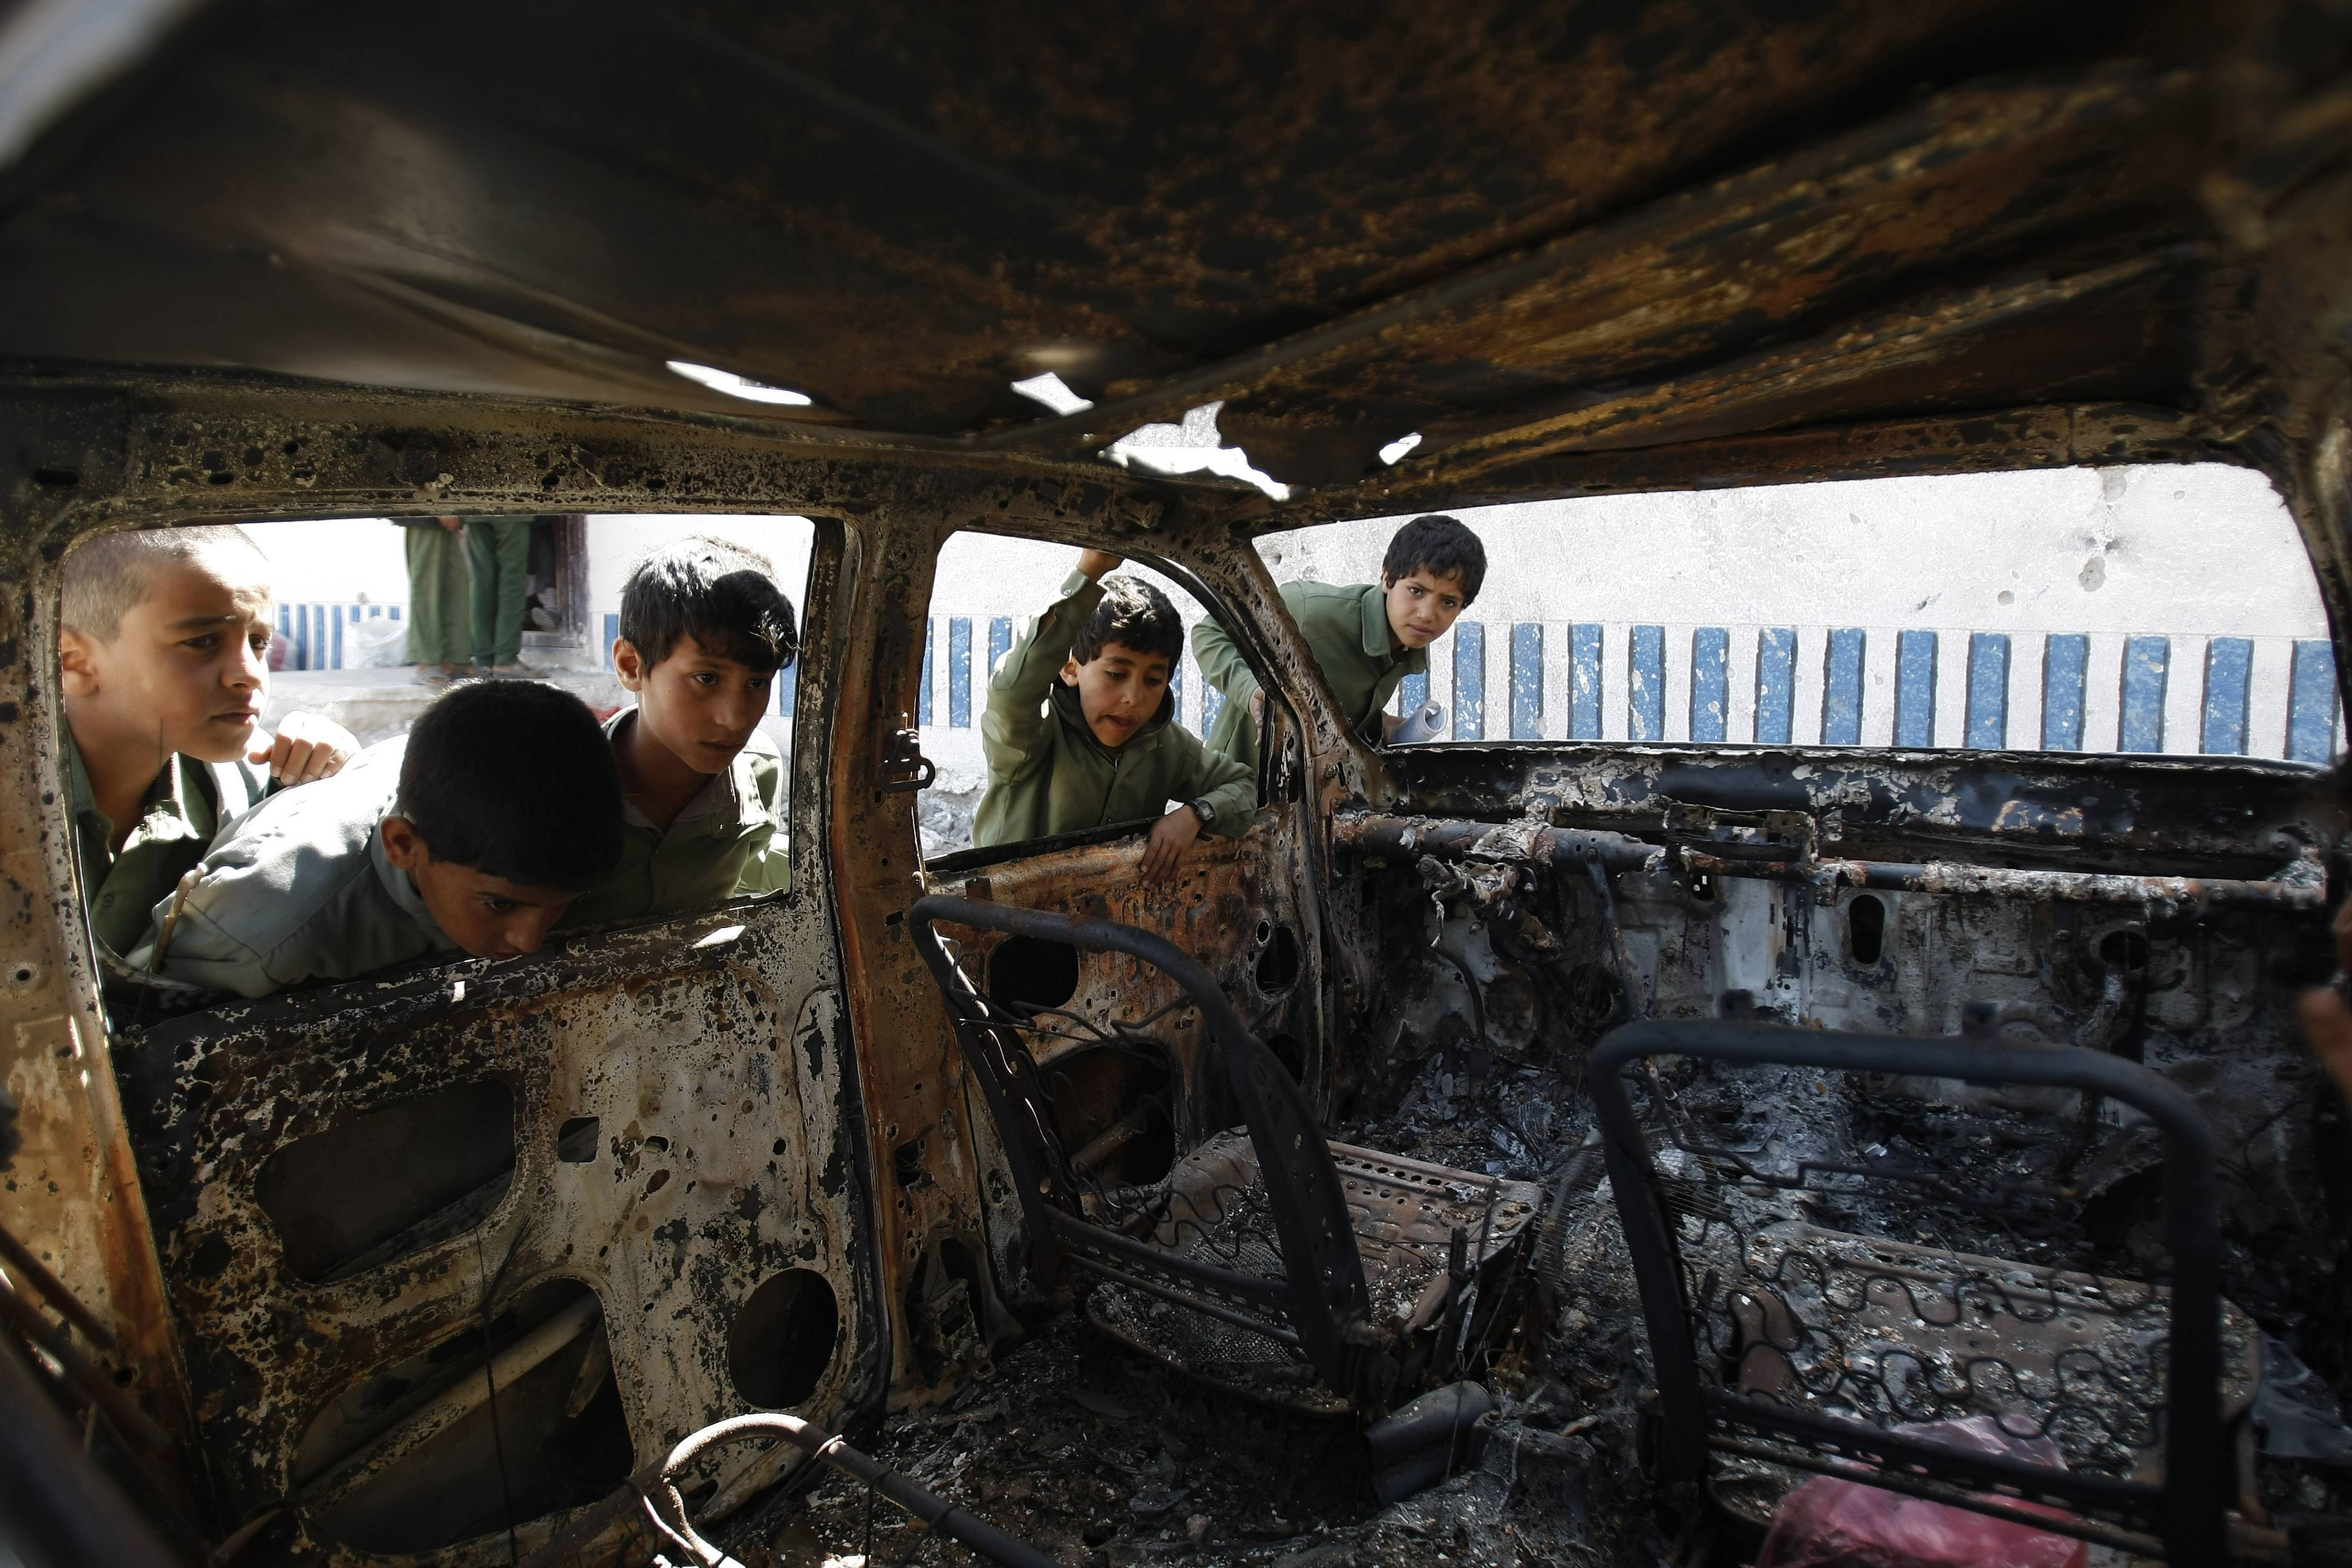 Yemeni boys look at a vehicle destroyed during a police raid on an al-Qaida militants' hideout in the Arhab region, north of Sanaa, Yemen, which resulted in the death of five militants and six soldiers, in this file photo from May 27.